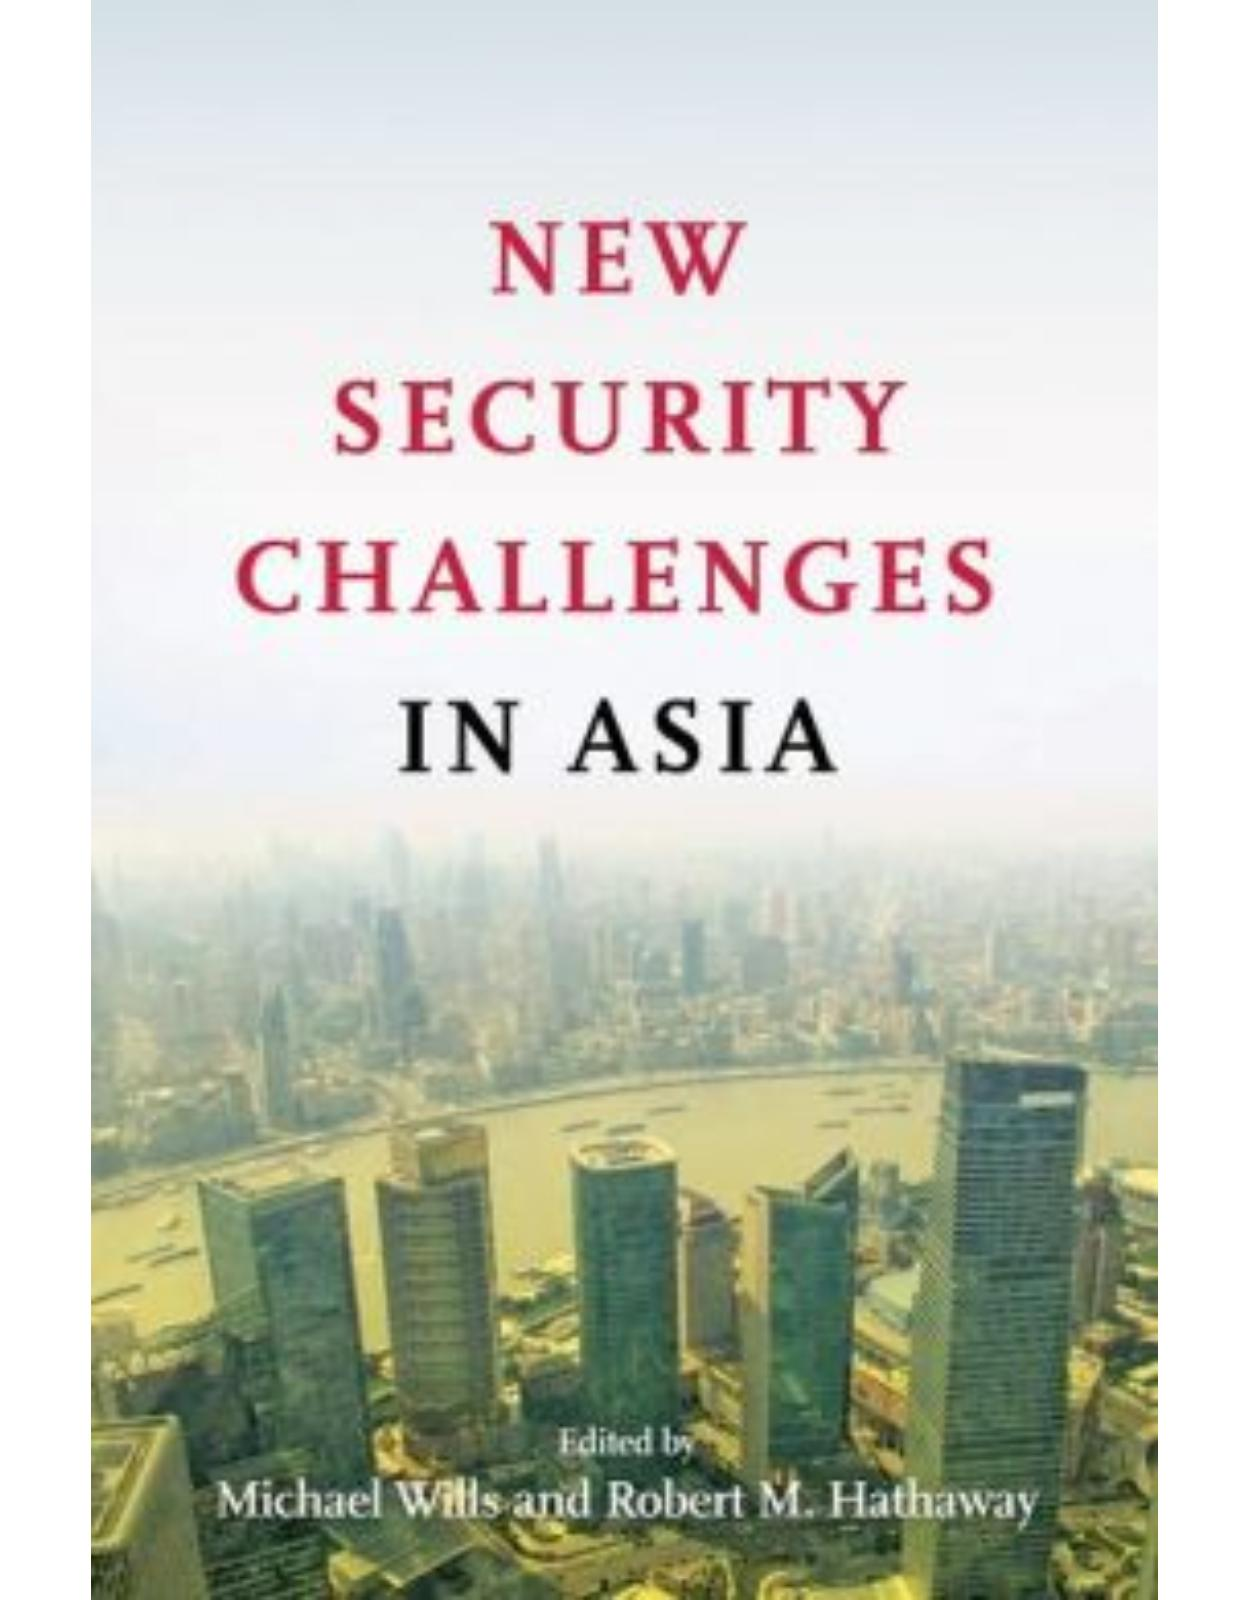 New Security Challenges in Asia.